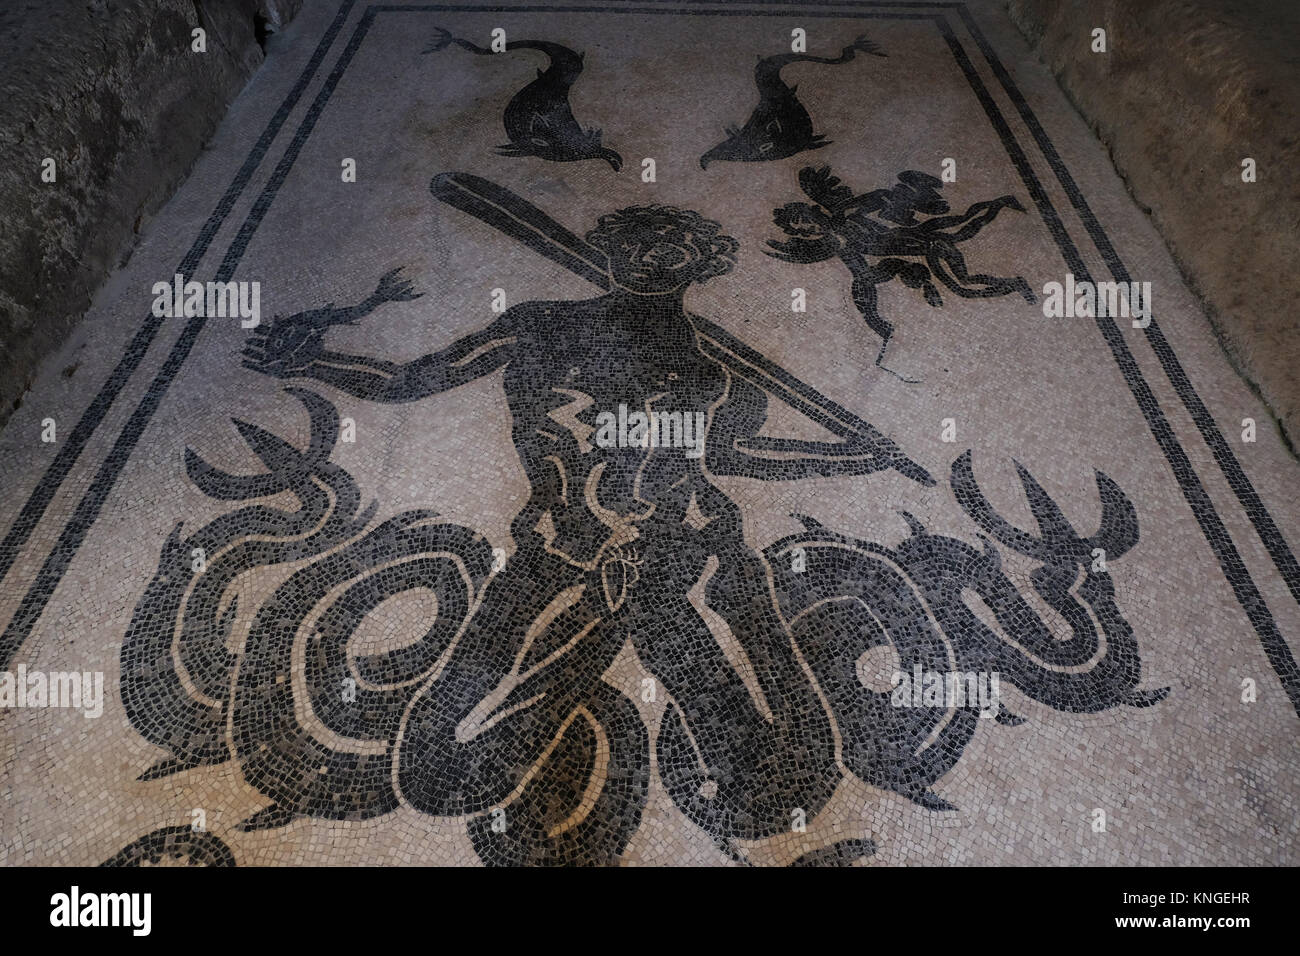 Floor mosaic at the baths at Herculaneum, depicting a mythical sea-god (Triton or Typhon?) and other sea creatures - Stock Image